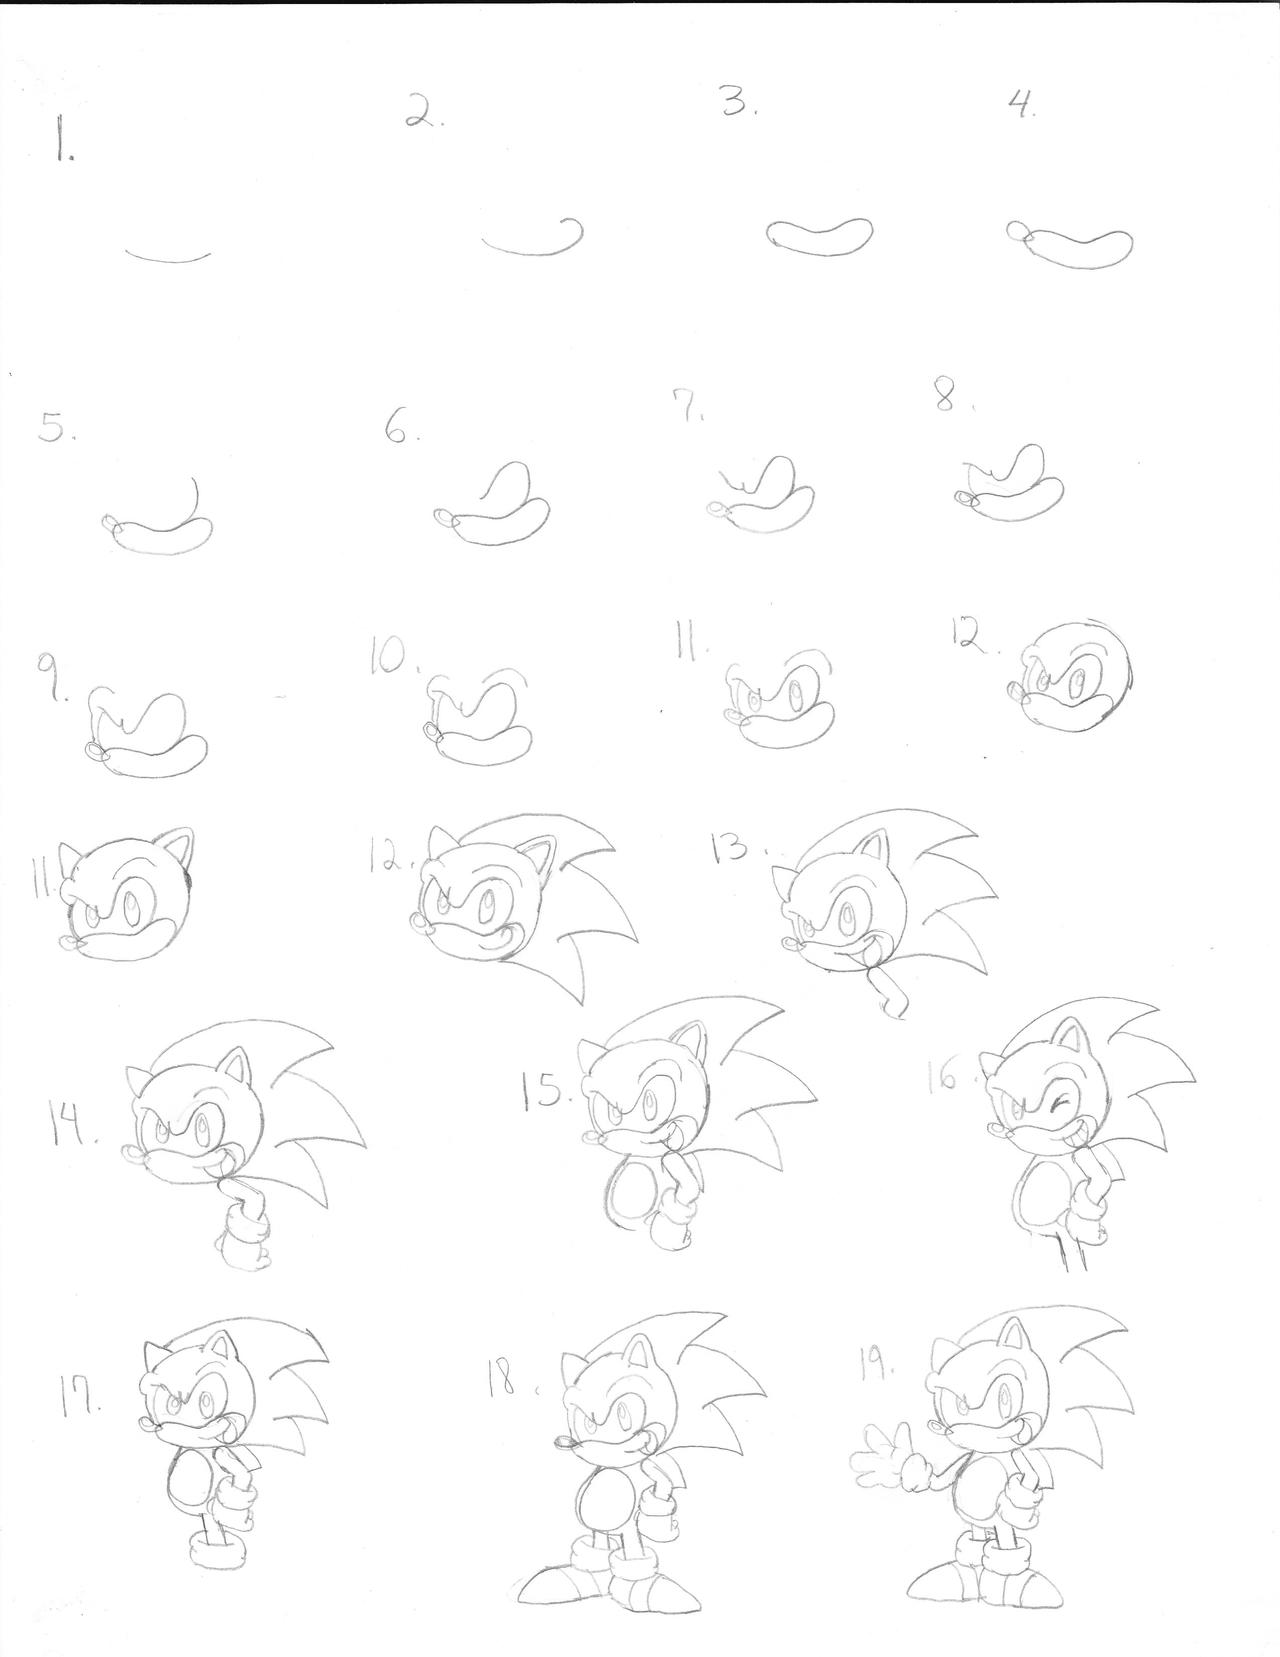 sonic the hedgehog drawing tutorial bigking keywords and pictures